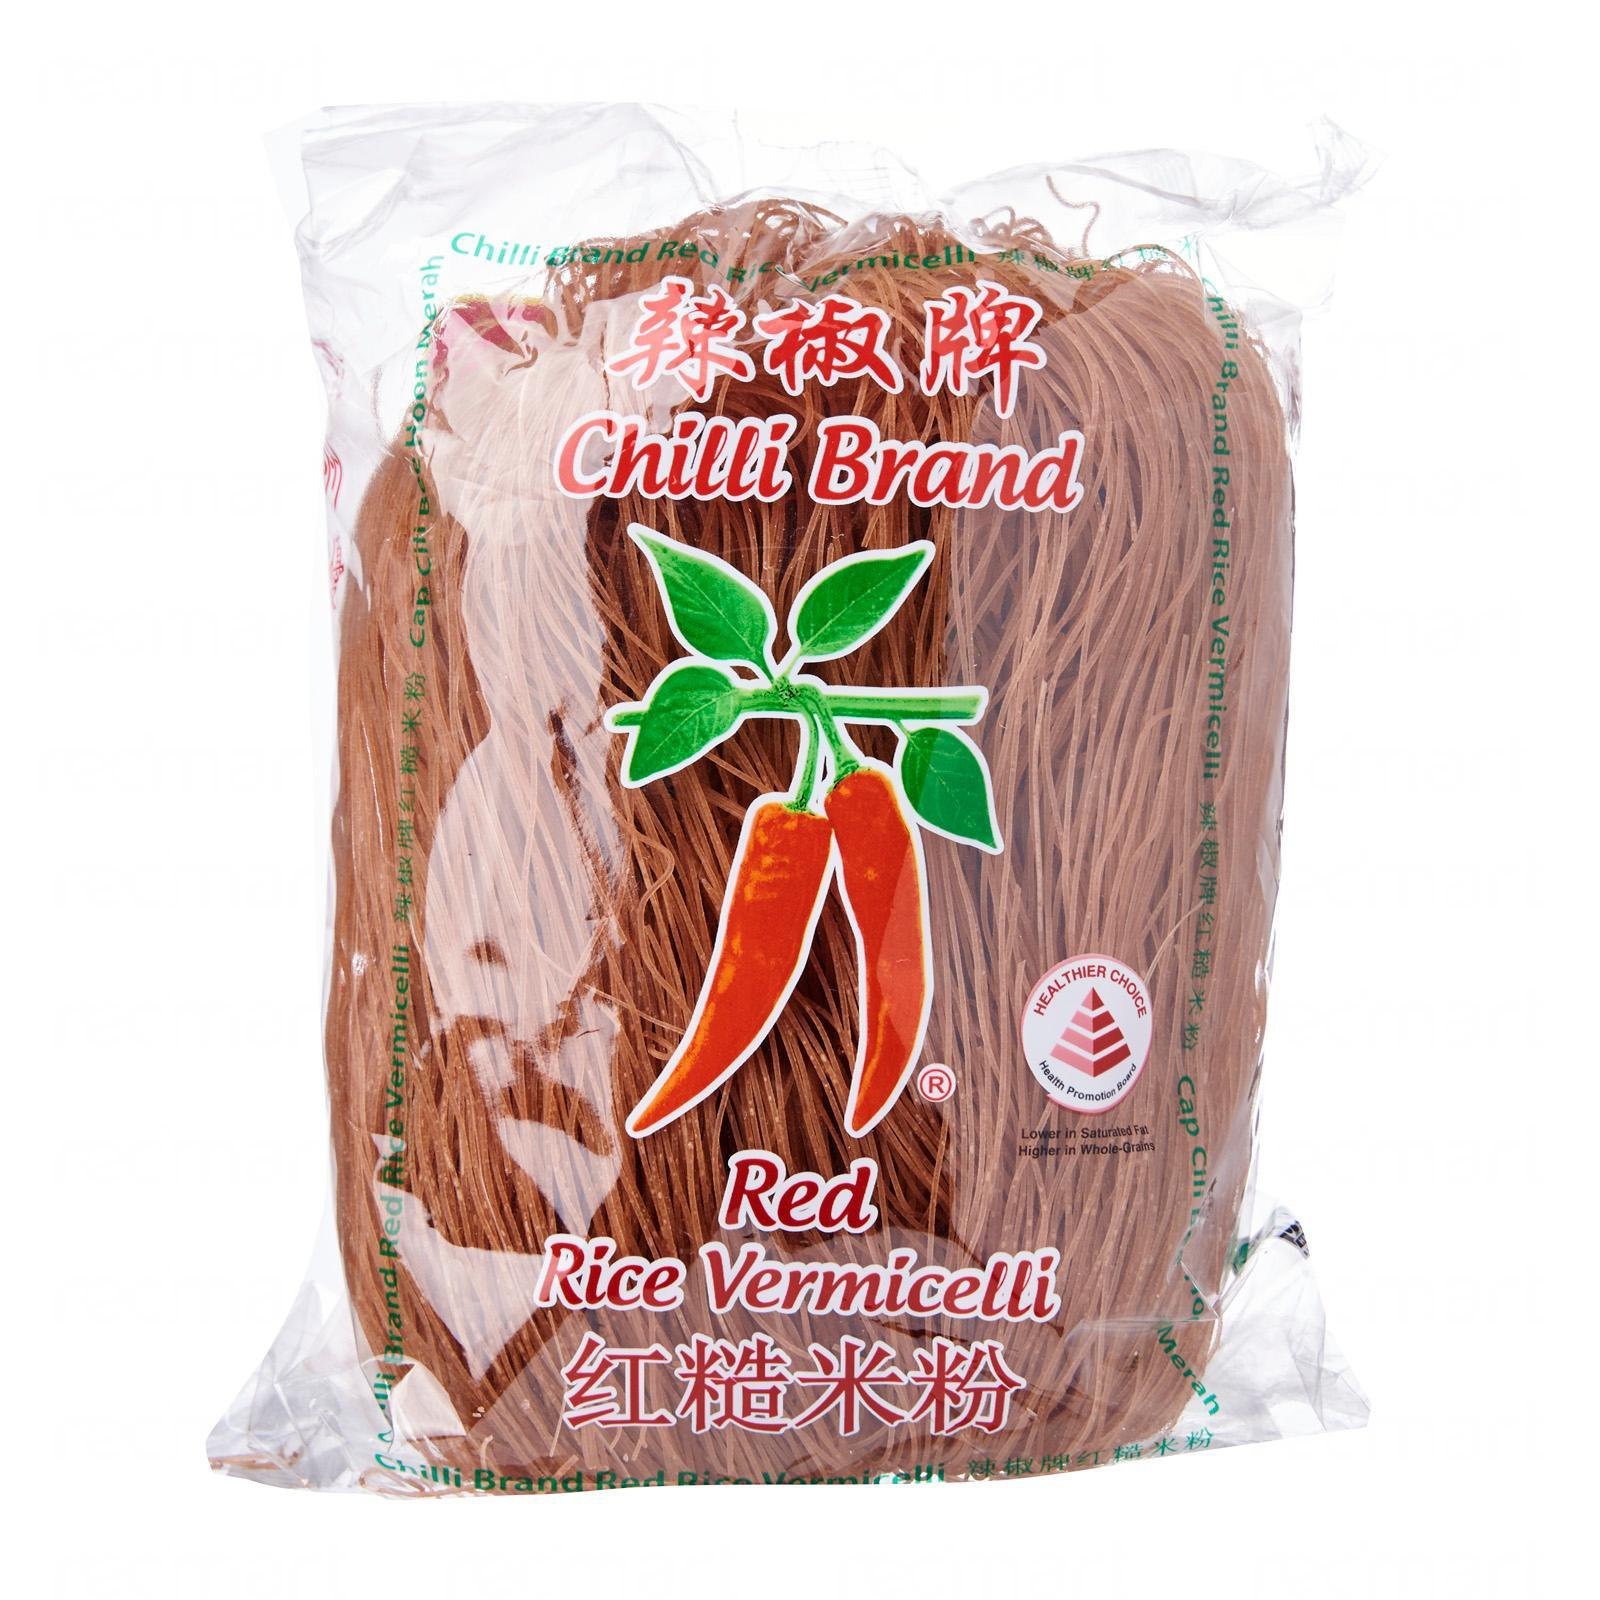 Chili Brand Red Brown Rice Vermicelli (Healthier Choice) - By FOOD SERVICE